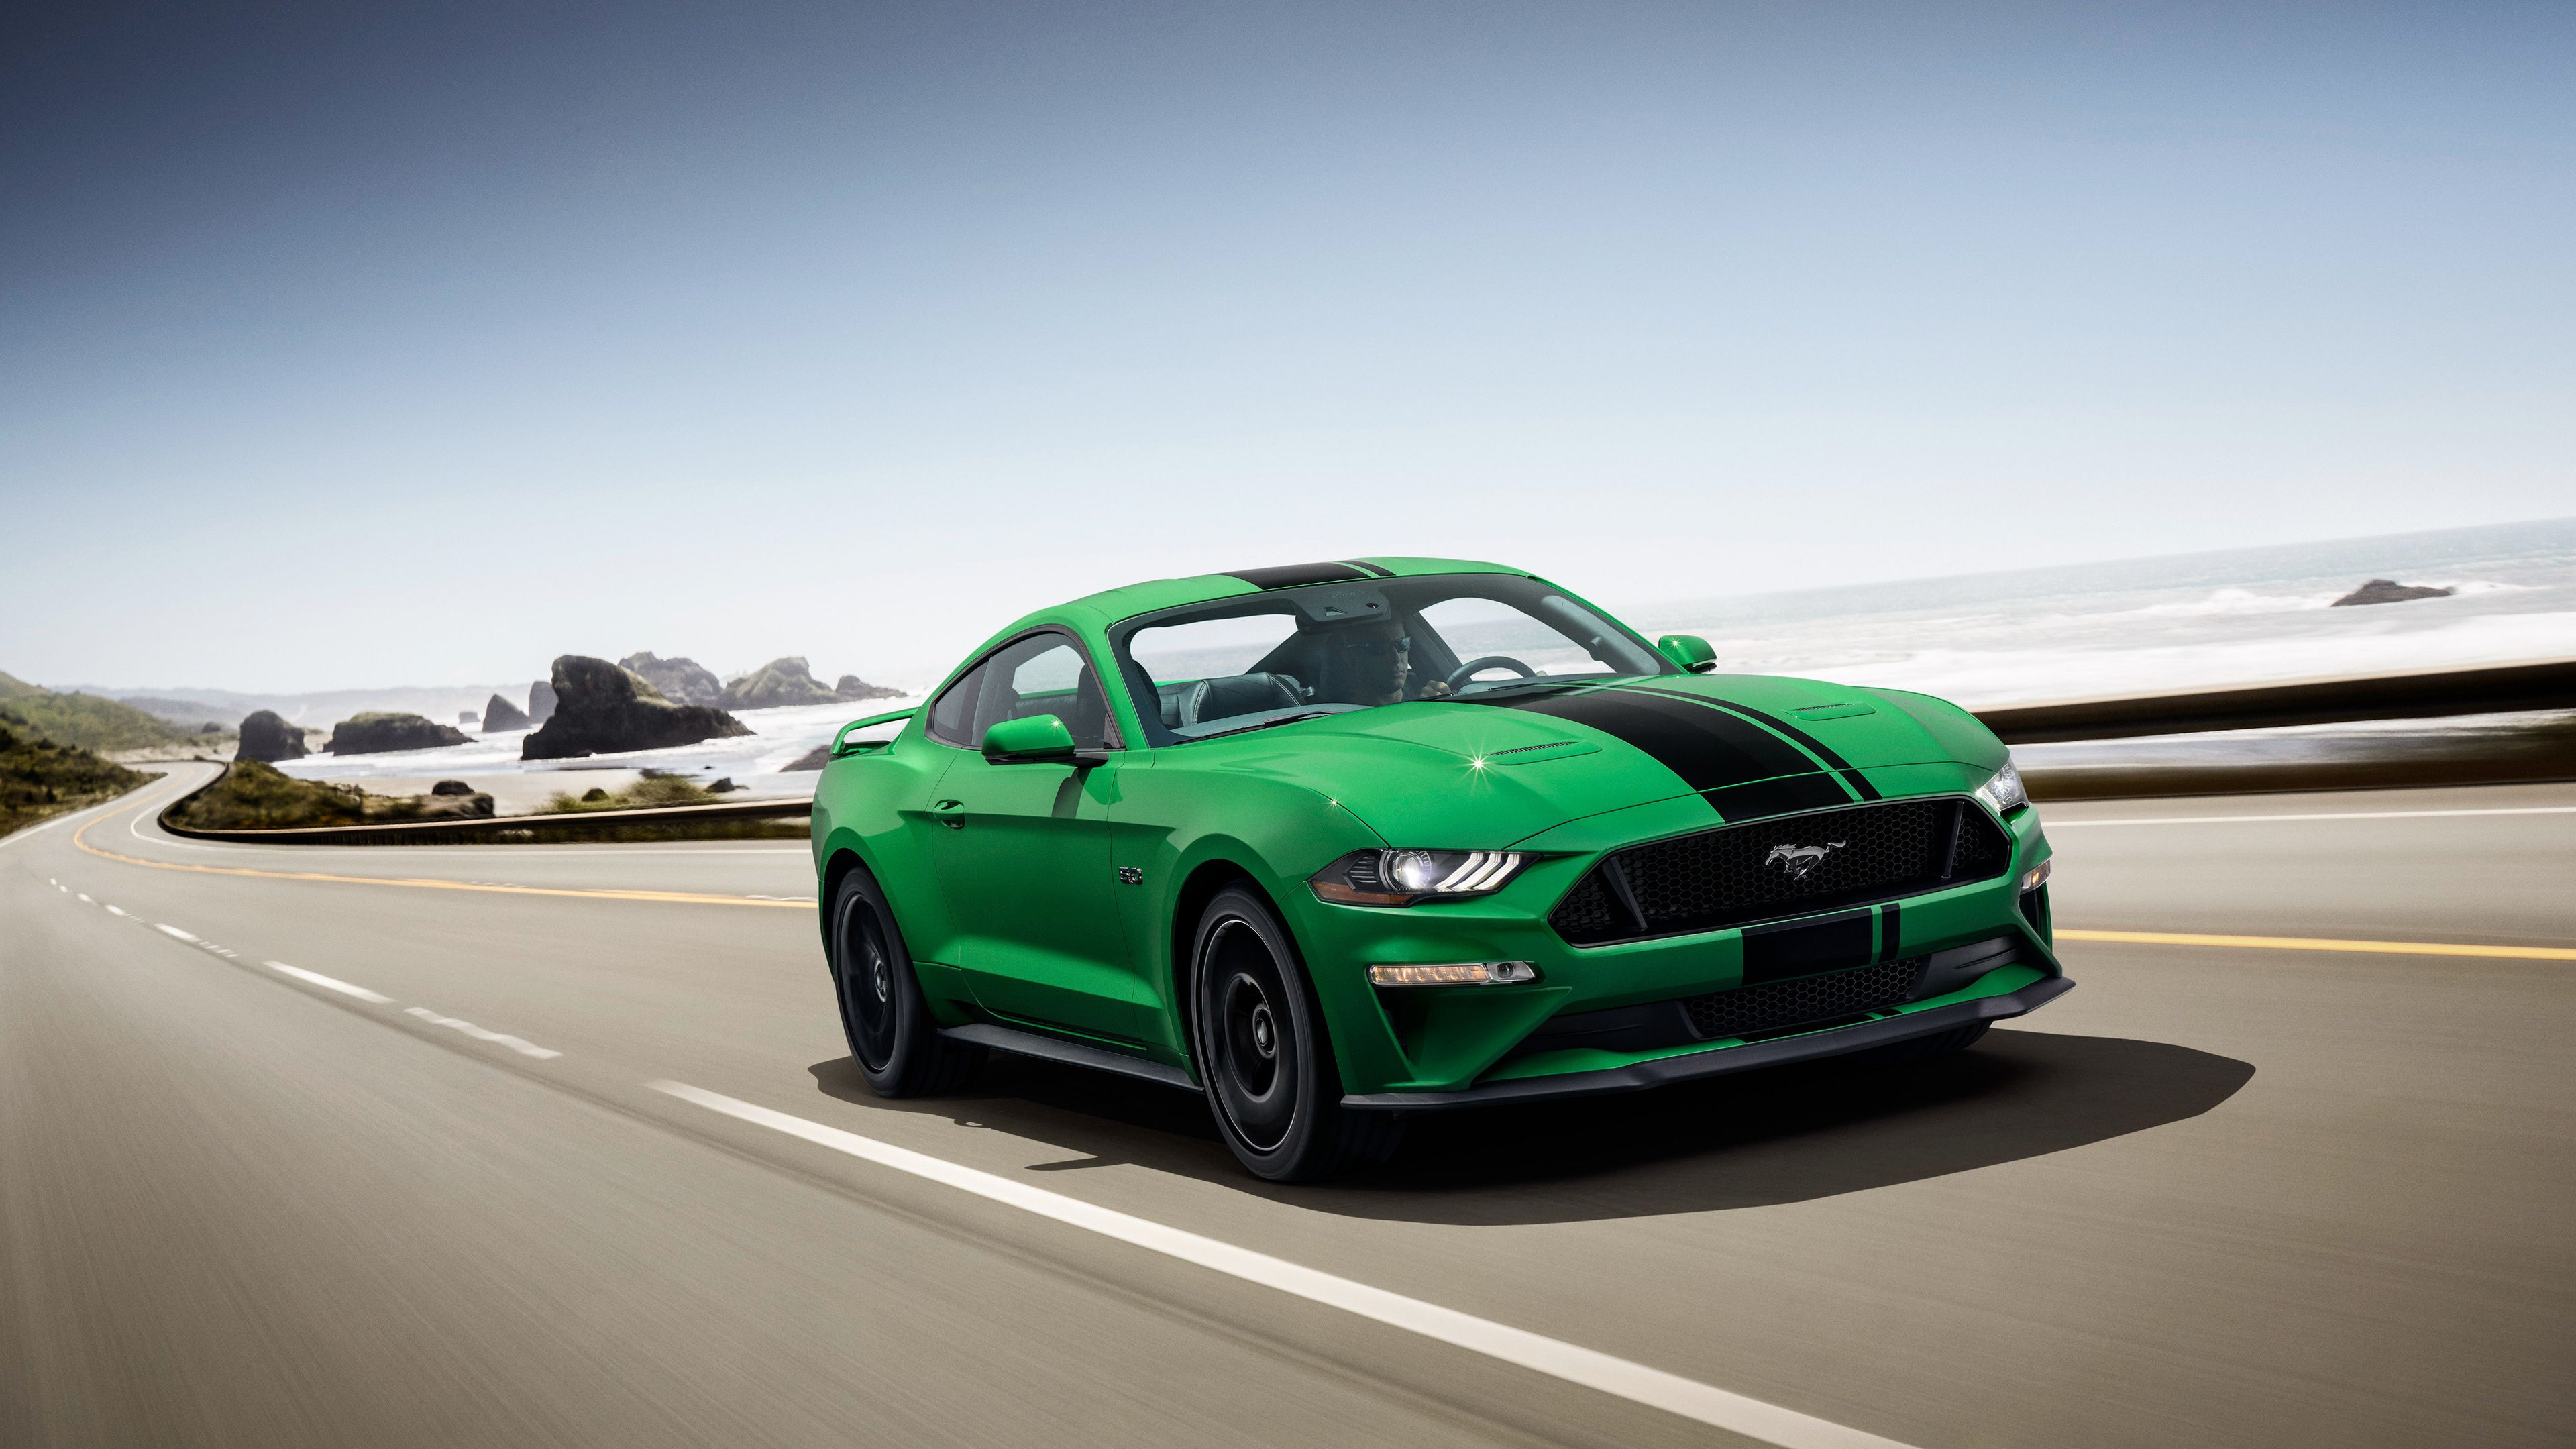 Ford Mustang Gt Fastback 2018 Mustang Wallpapers Hd Wallpapers